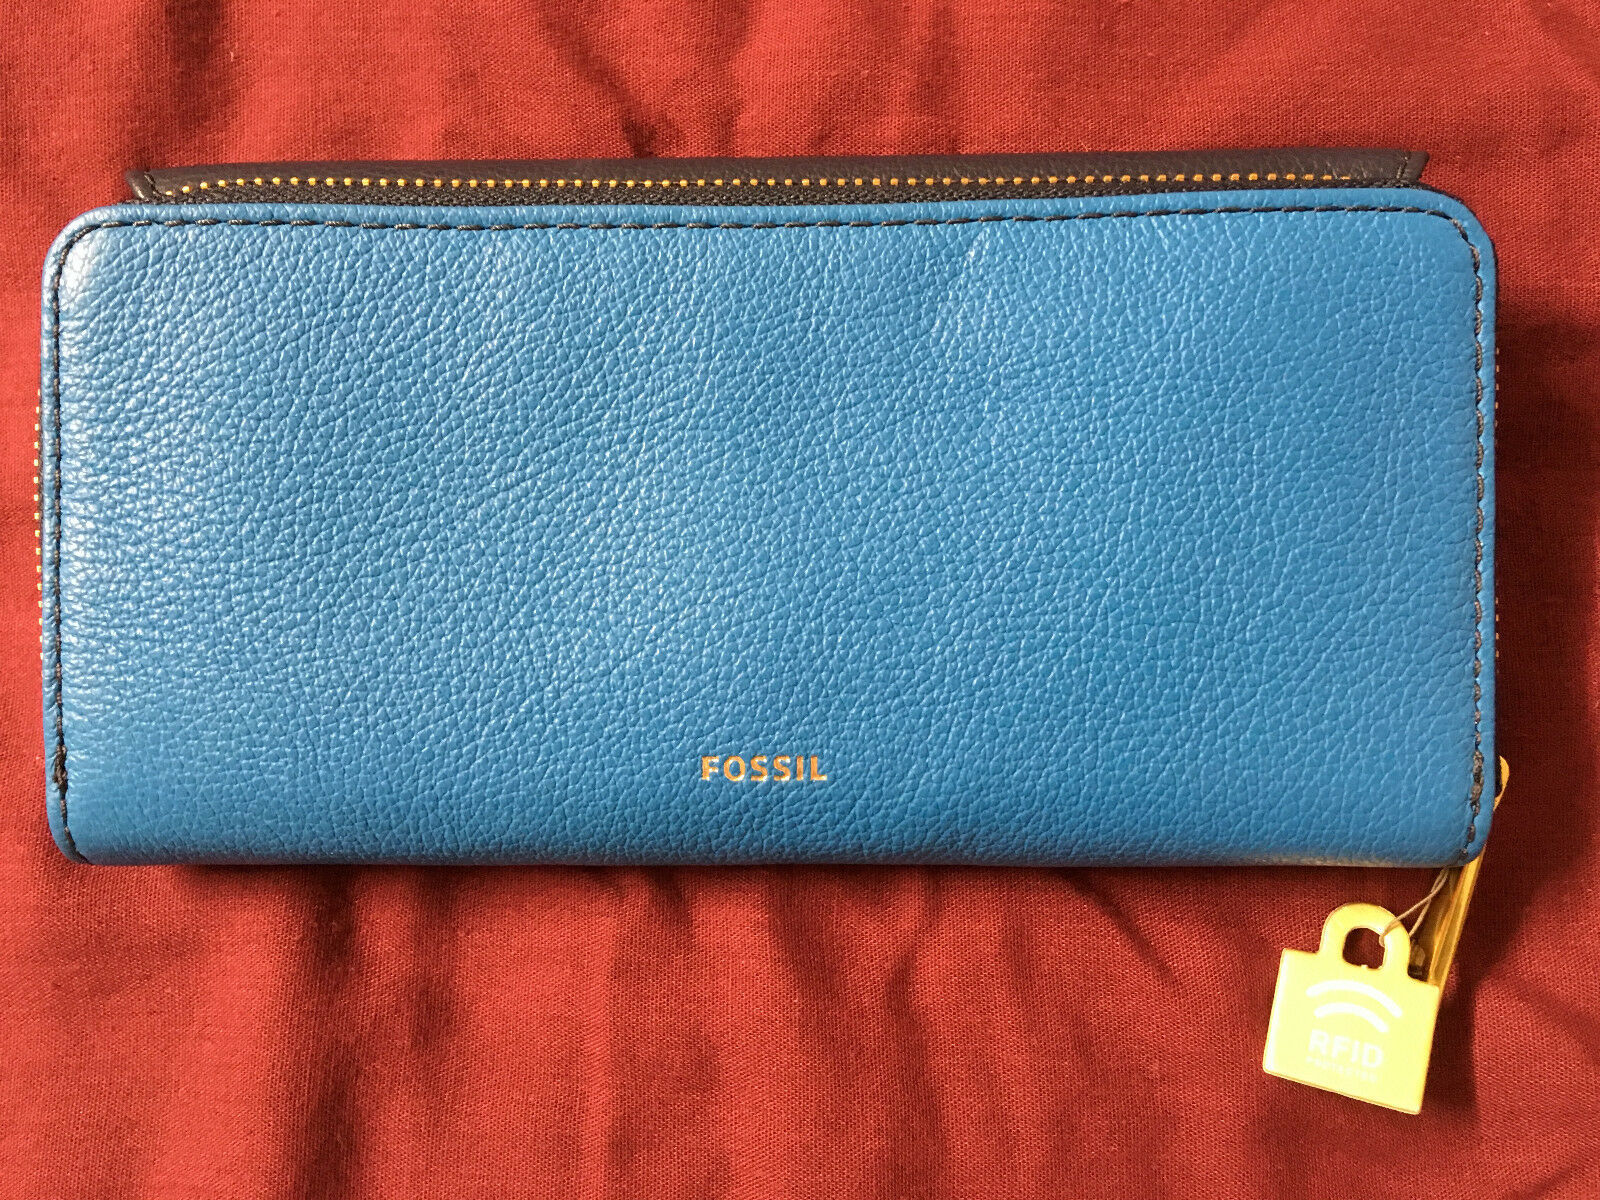 NWT Fossil Jori Blue Navy Leather Wallet Flap Clutch + 25% off your next order*